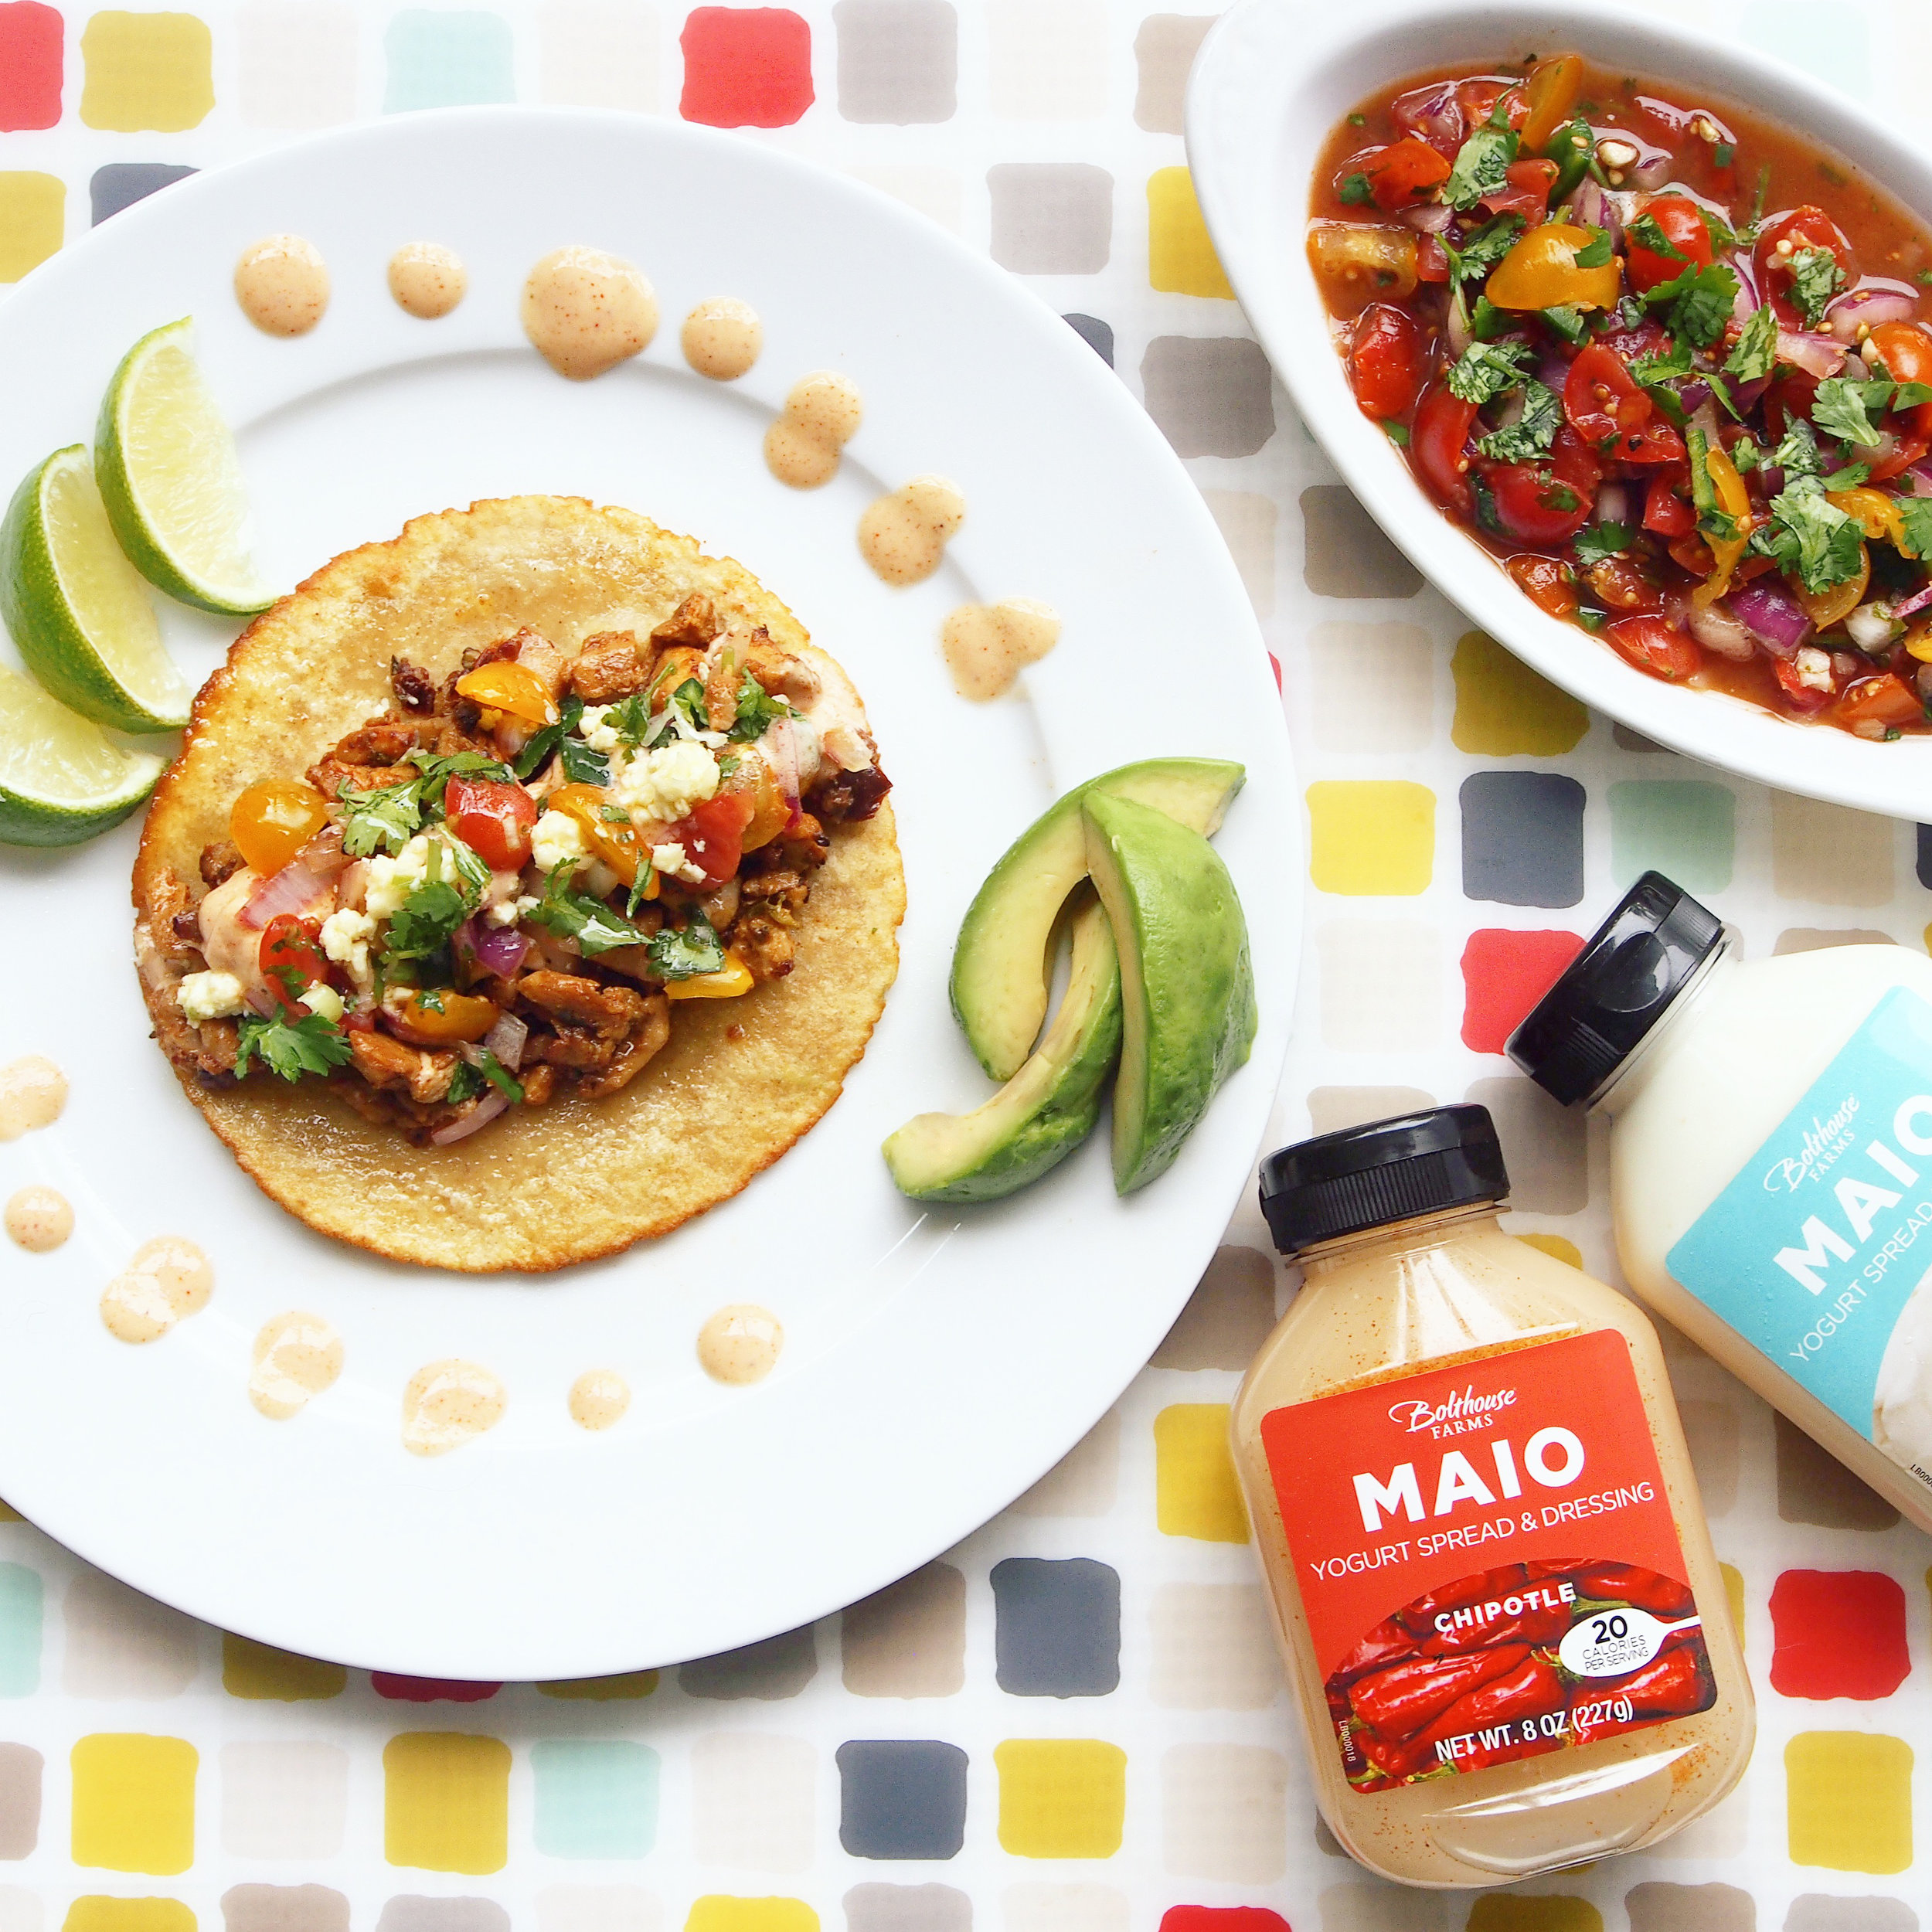 These Spicy Chicken Tacos are made with chipotle chilies with Bolthouse Farm's MAIO Chipotle Yogurt Spread.